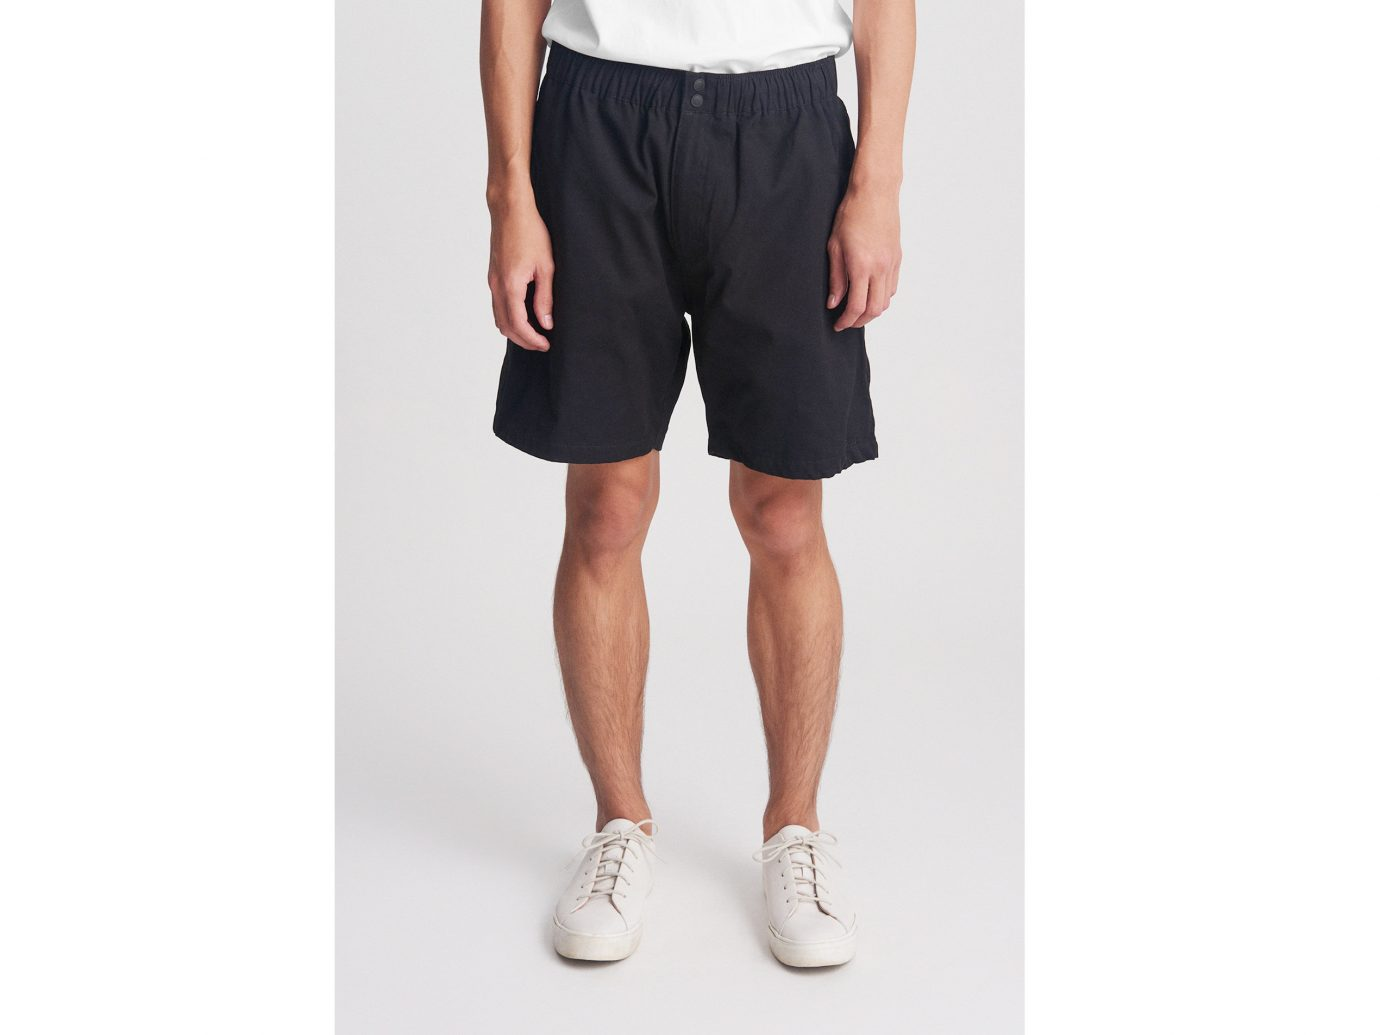 Beach Style + Design Travel Shop person clothing posing shorts active shorts standing waist trunks trouser male